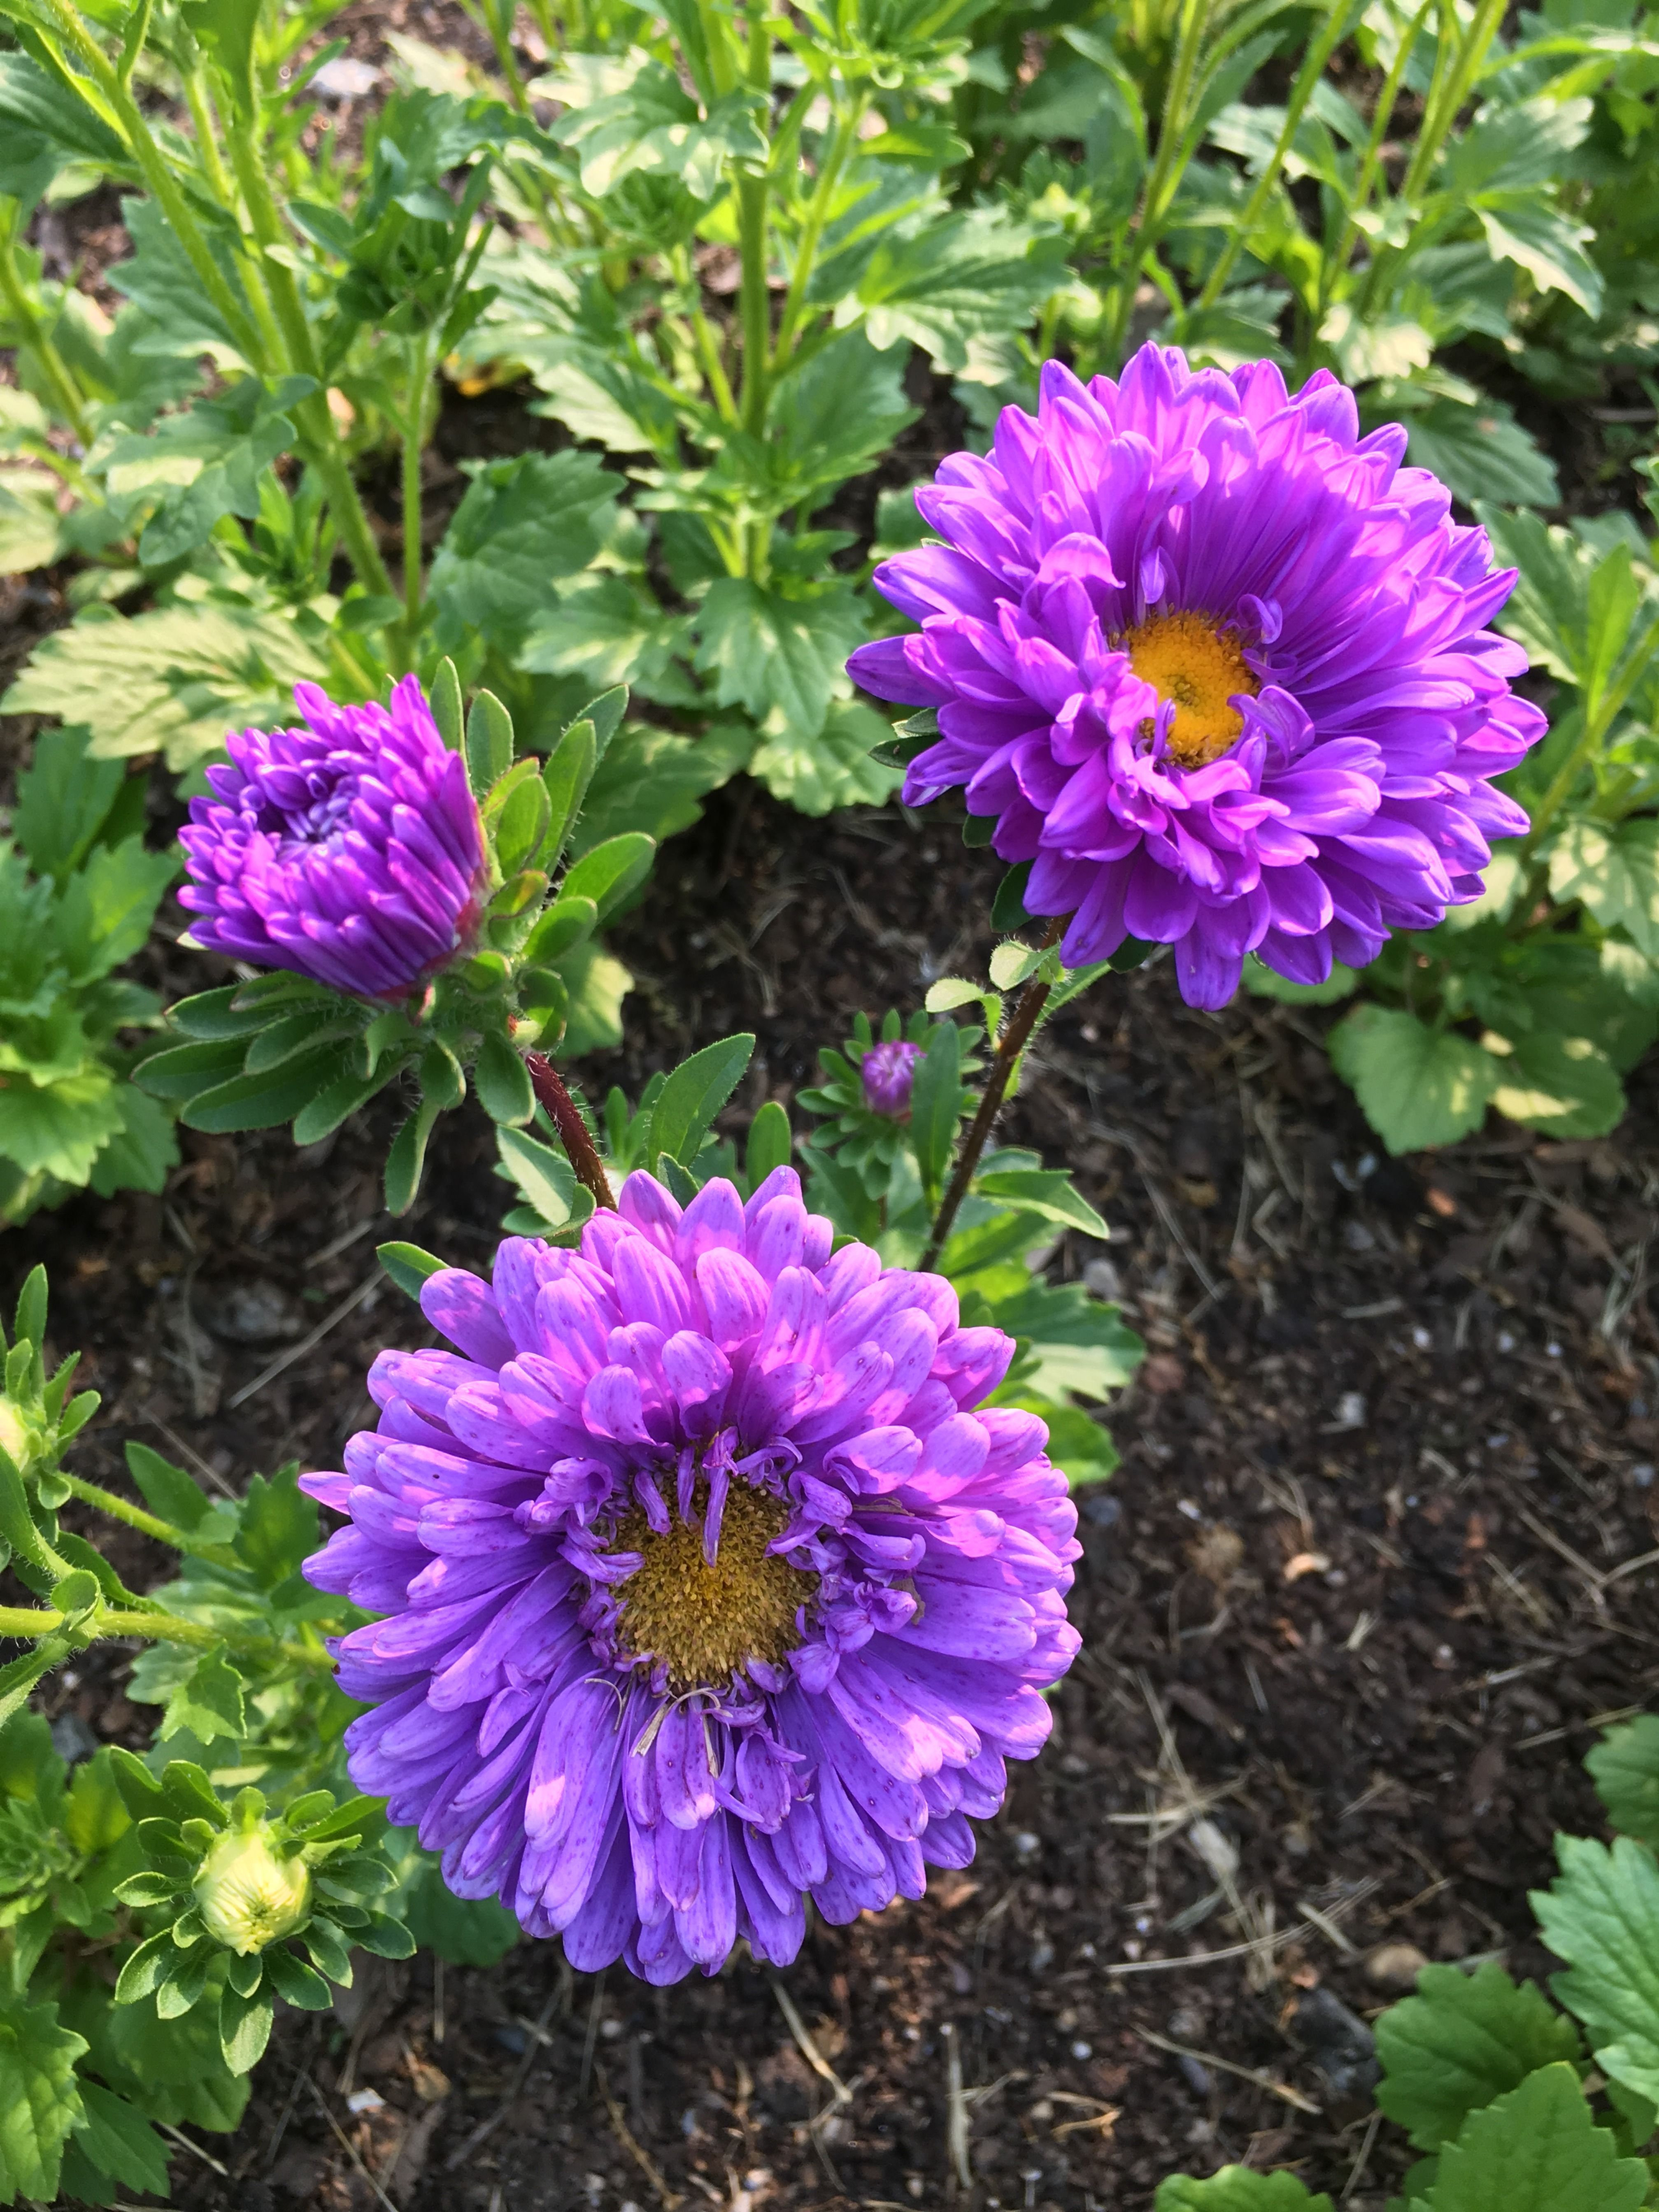 Purple China Asters grown at Love 'n Fresh Flowers, a